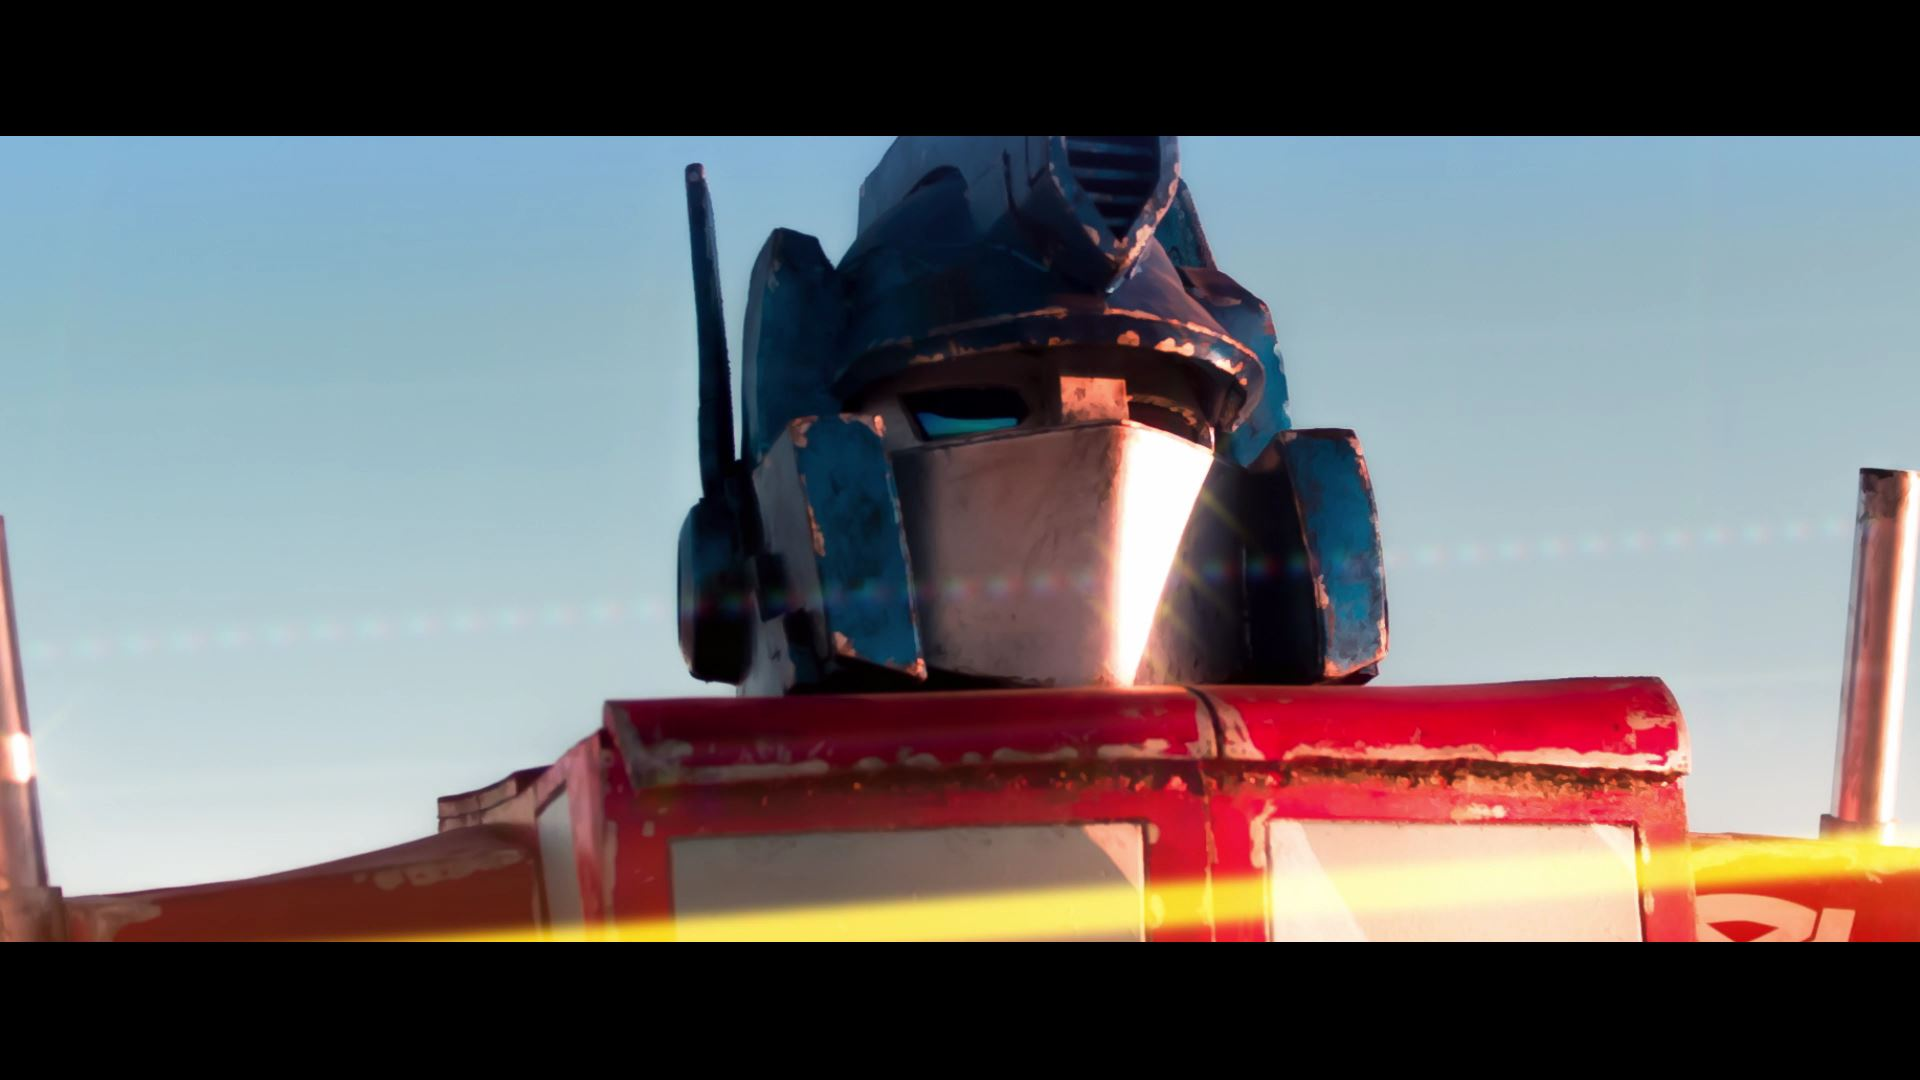 Fan-Made Transformers Movie Celebrates Cosplay and Practical Effects